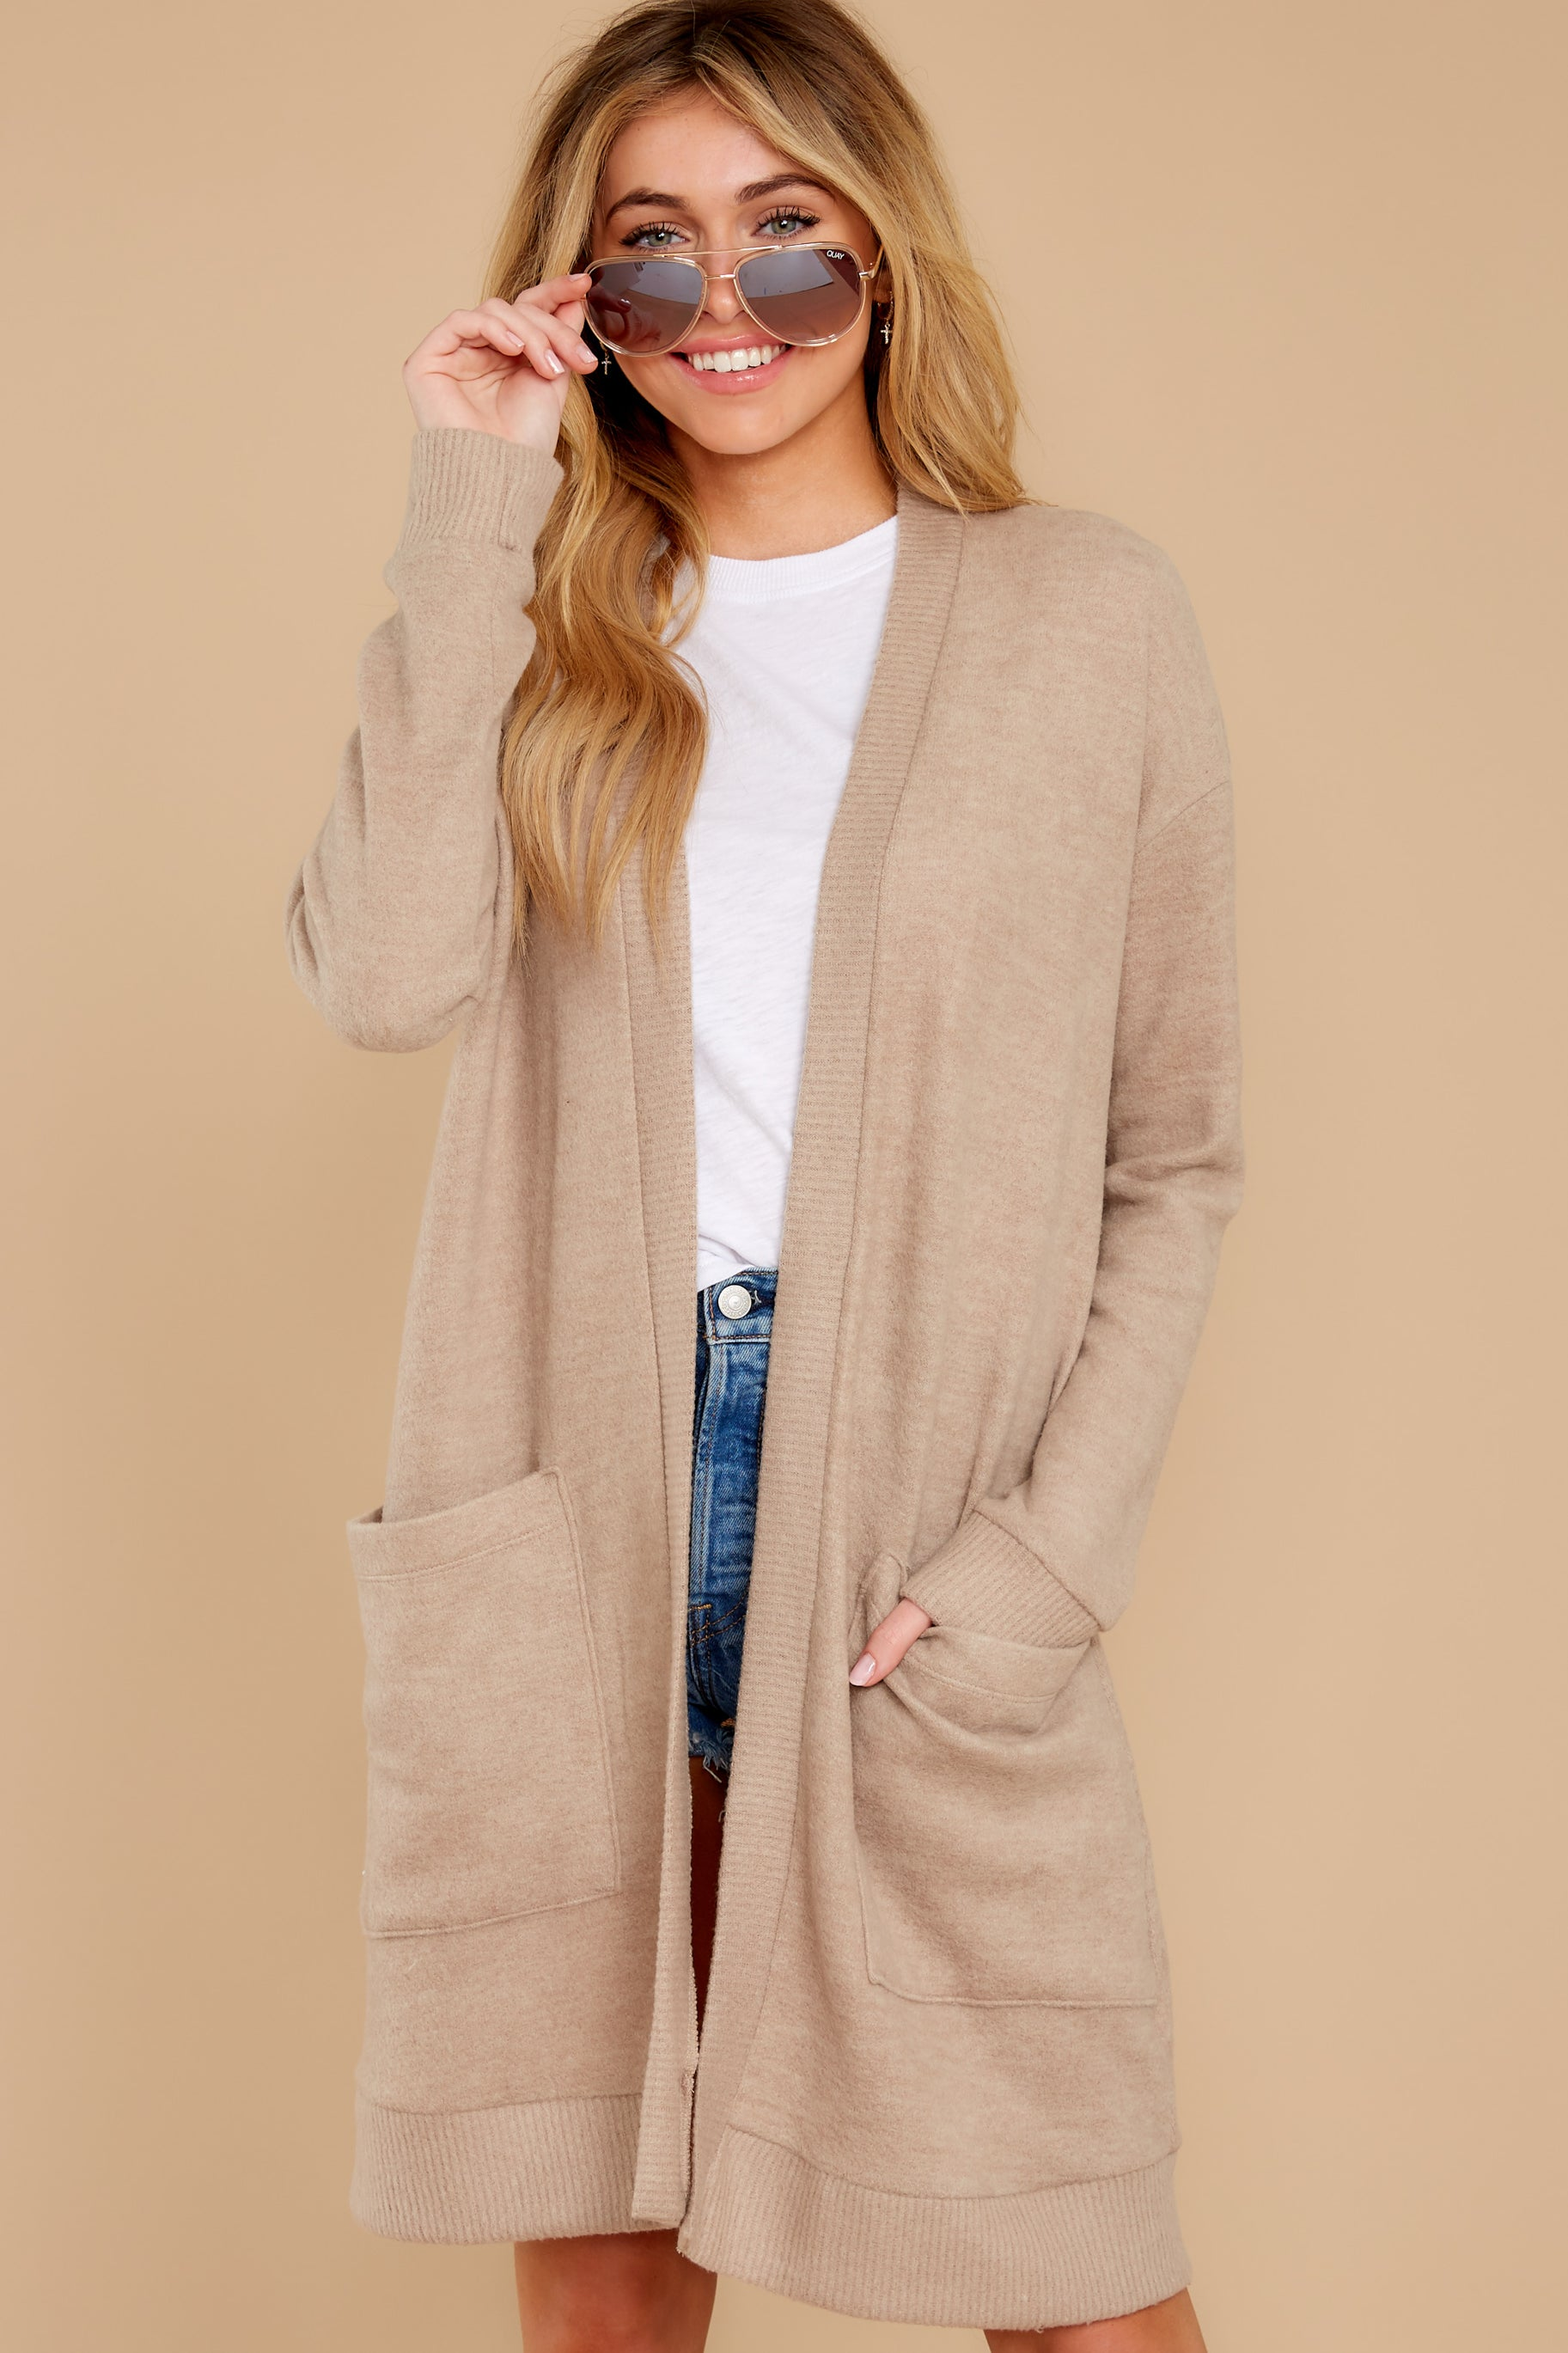 7 All I Really Want Taupe Cardigan at reddress.com